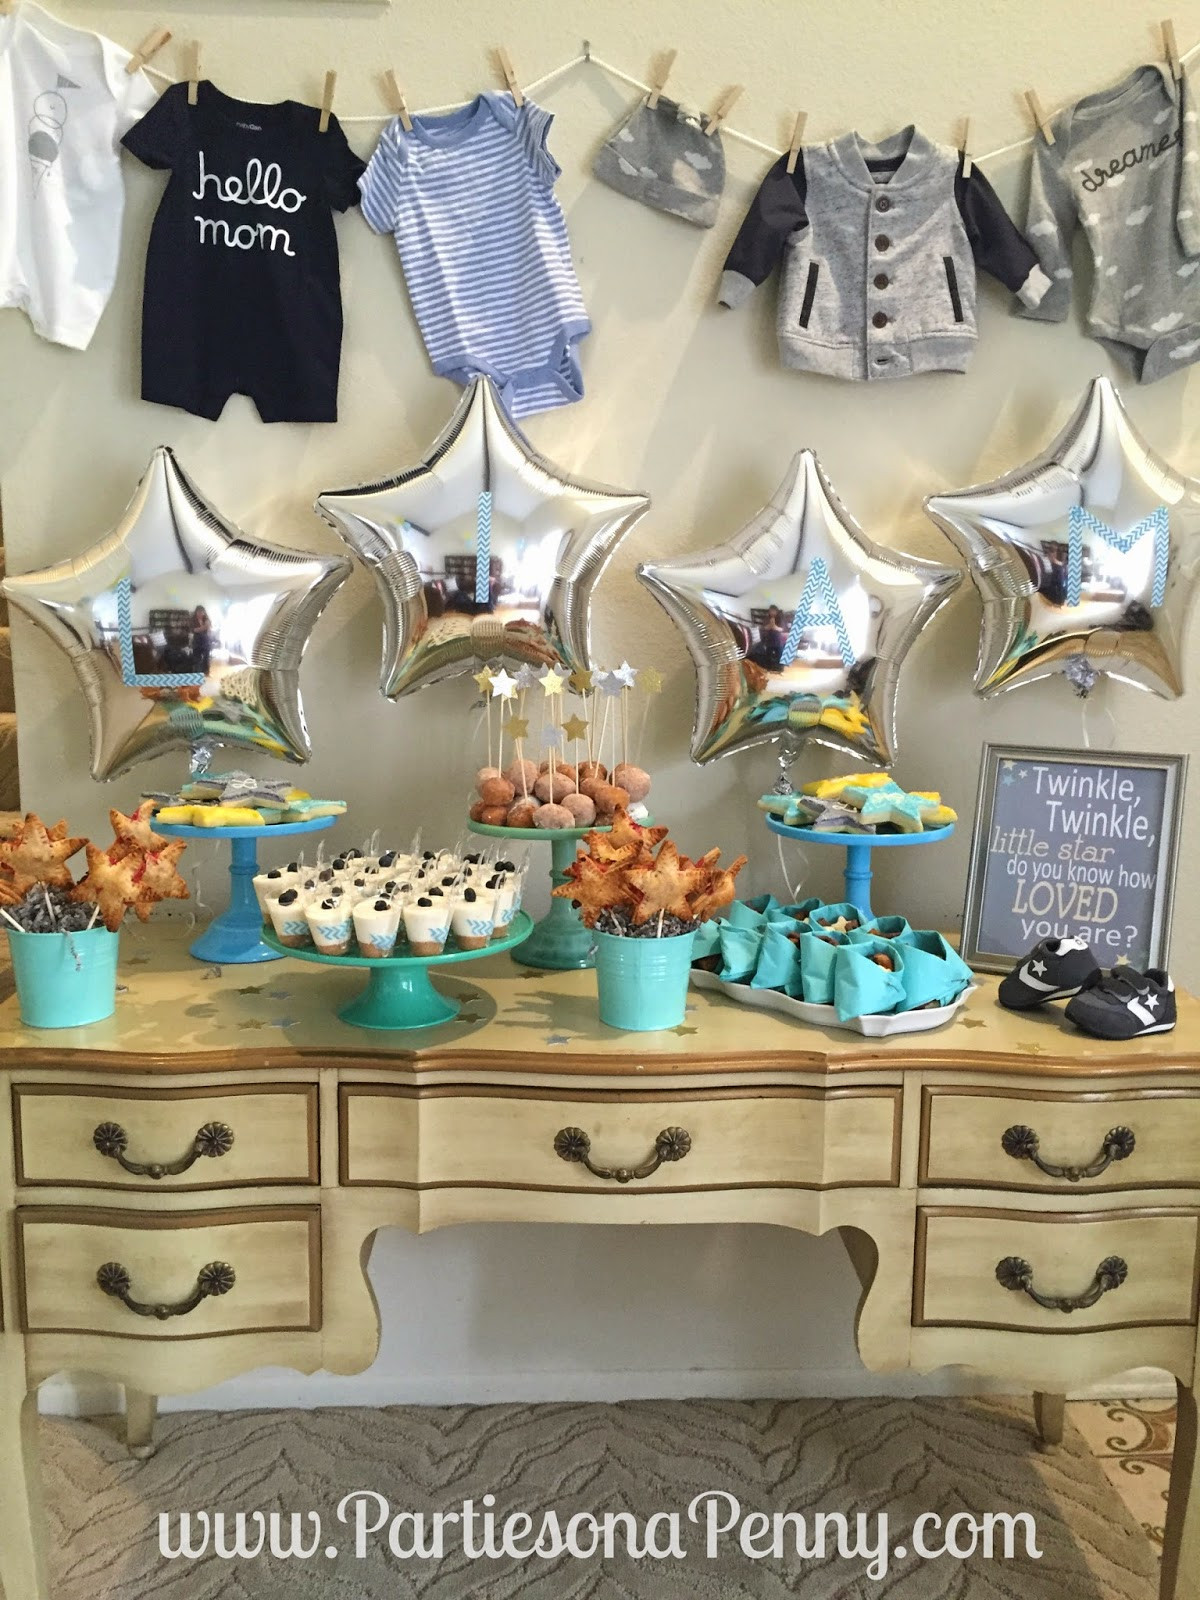 Baby Shower Dessert Table For Boy  Parties A Penny Twinkle Twinkle Little Star Baby